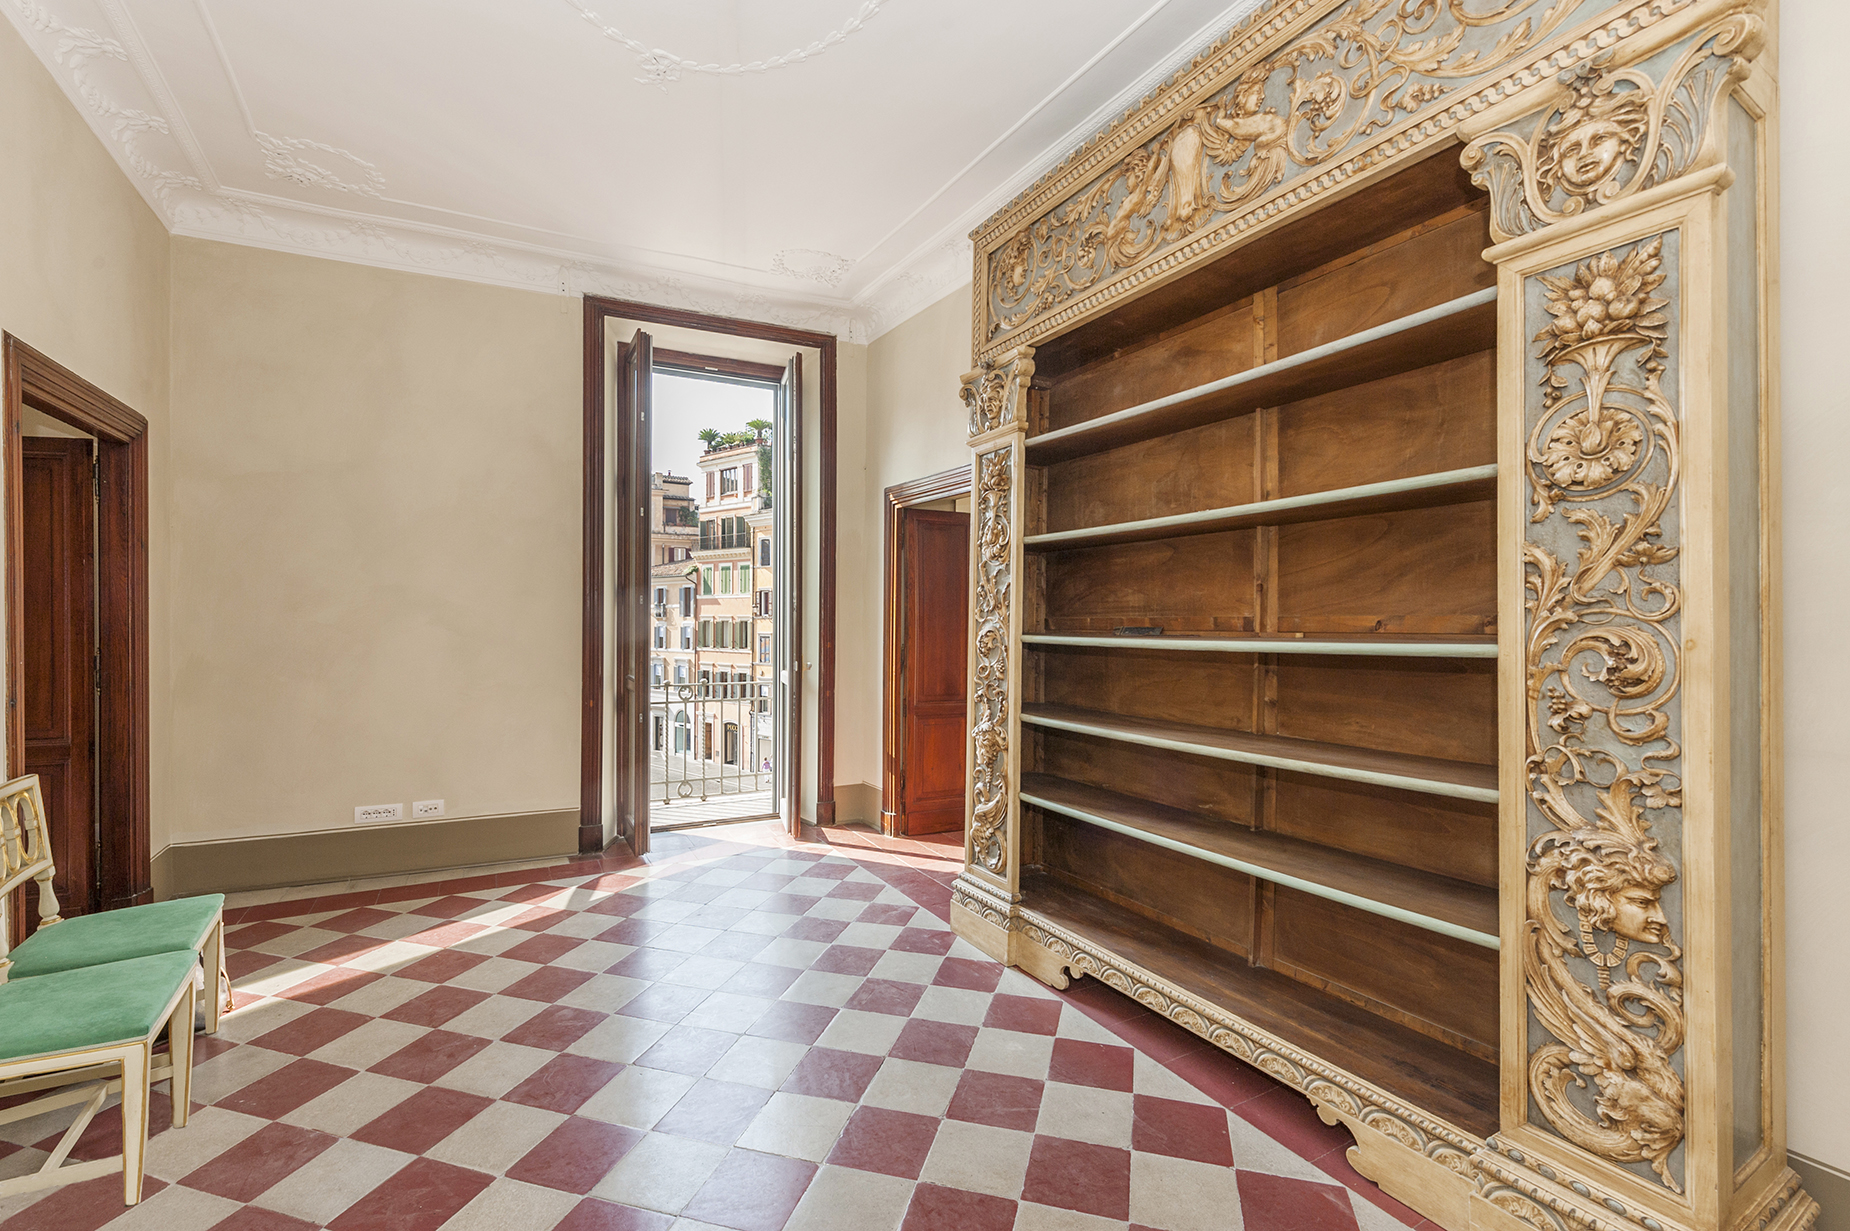 Apartment for Rent at Magnificent apartment overlooking Piazza di Spagna Rome, Italy